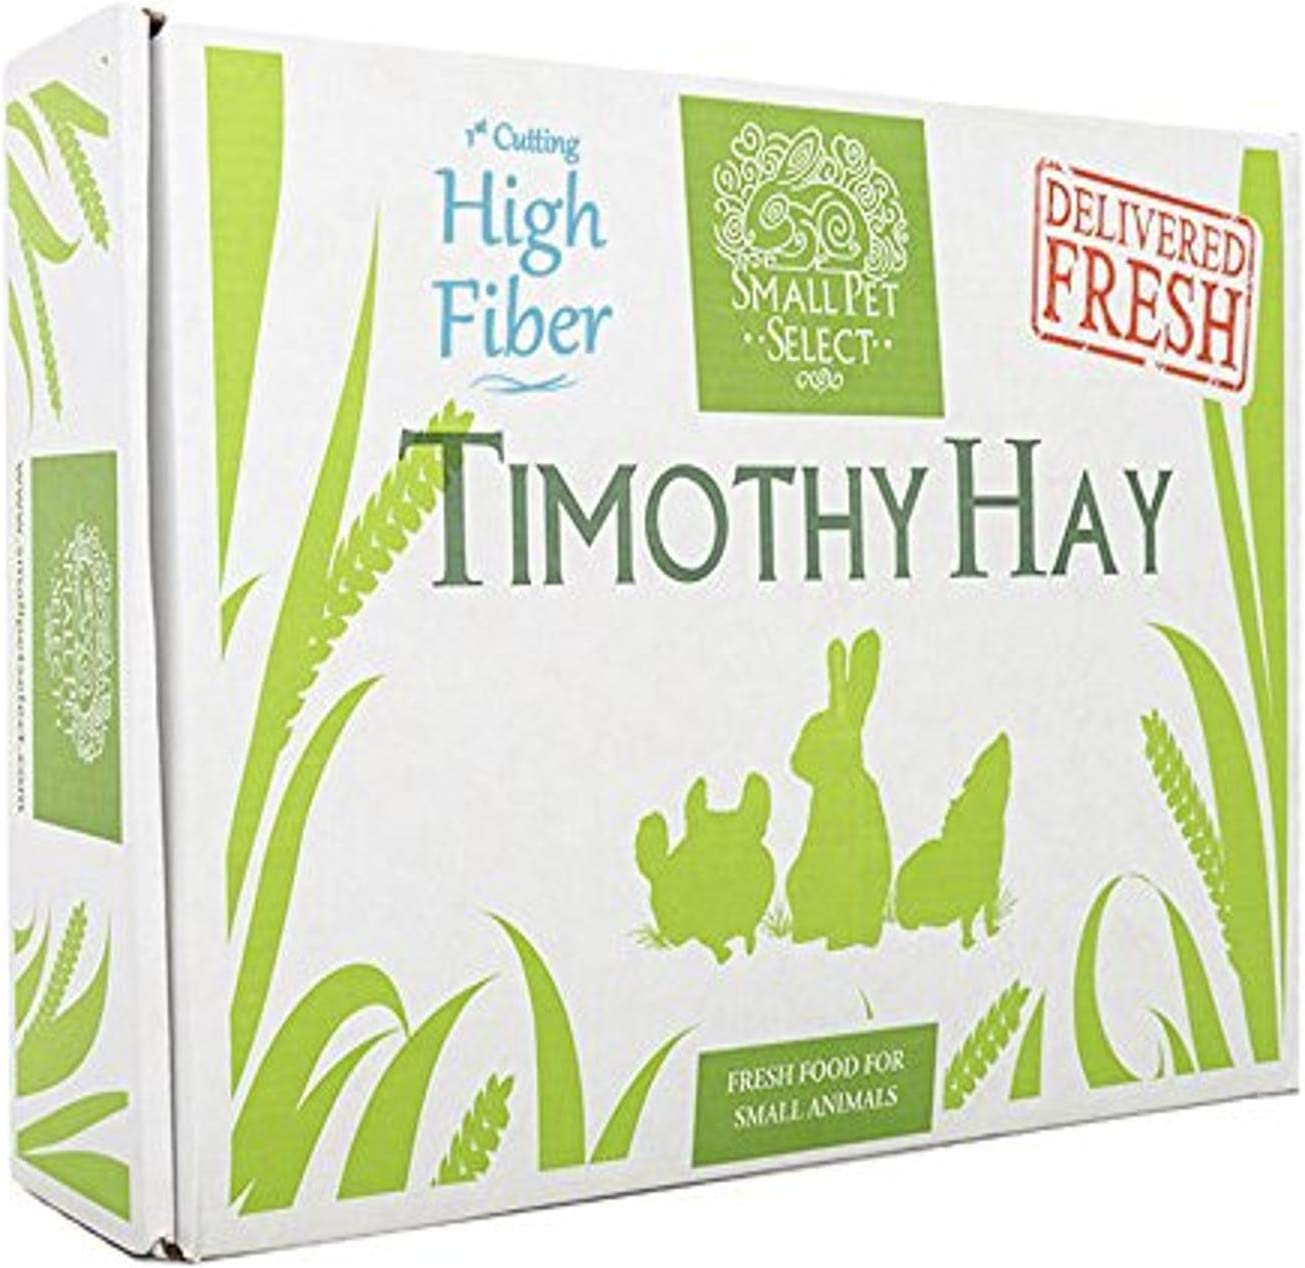 "Small Pet Select 1St Cutting ""High Fiber"" Timothy Hay Pet Food"